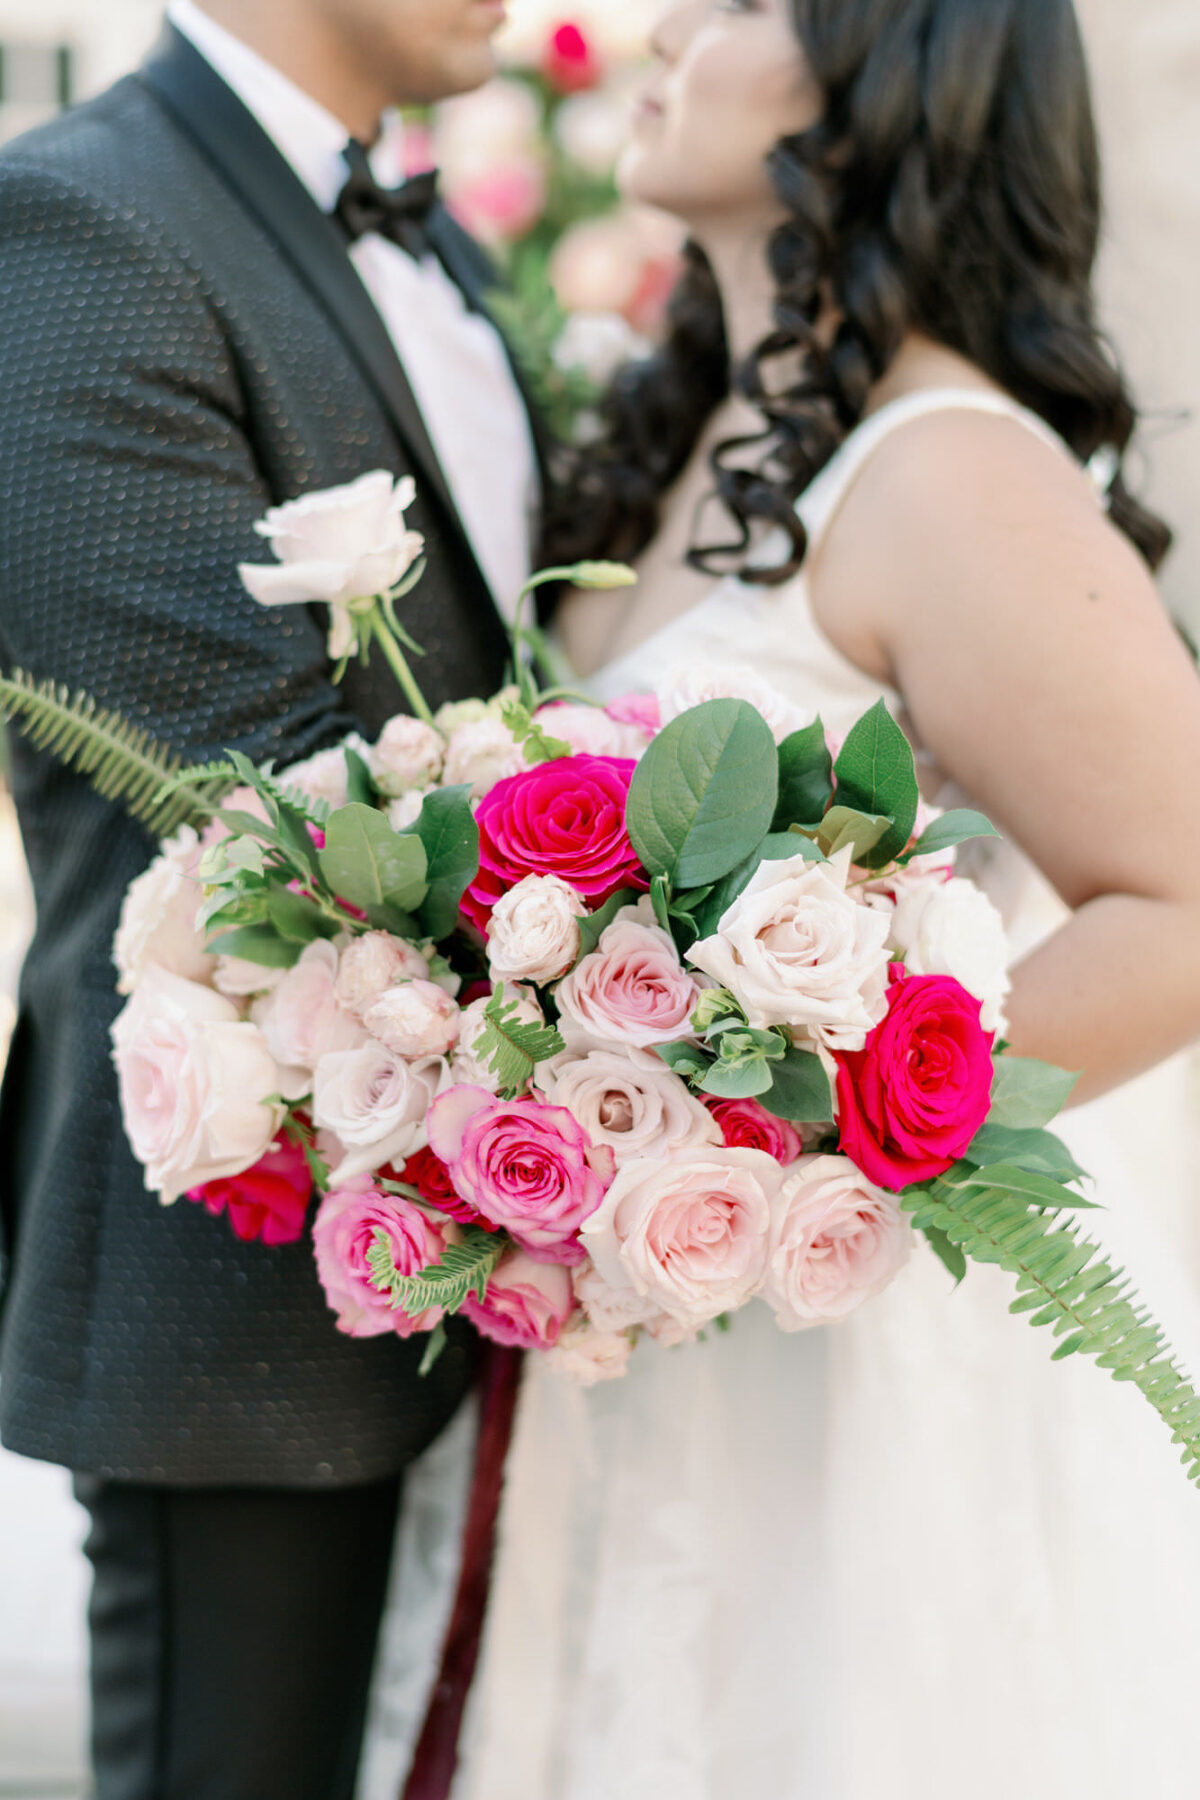 Pink classic wedding bouquet with roses - Peony Park Photography